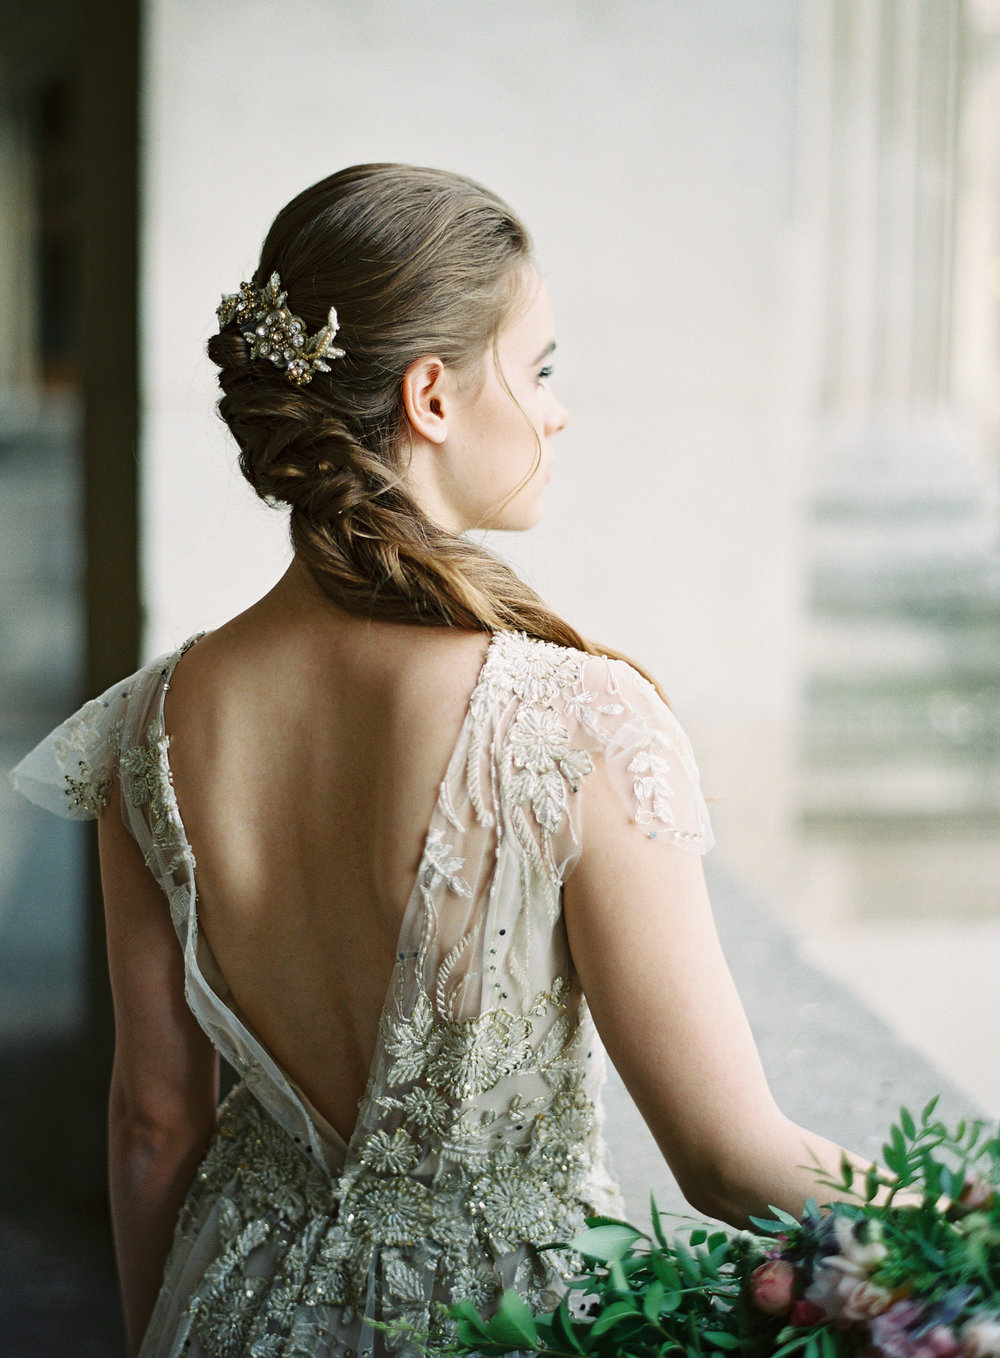 Paris Bride | Bridal Hairpiece | Bridal Hair | Gold wedding gown | Ethereal Bride | Shop Gossamer | Bella Belle Shoes | Paris wedding photographer | Paris film photographer | France wedding photographer | France film photographer | Whiskers and Willow Photography.jpg